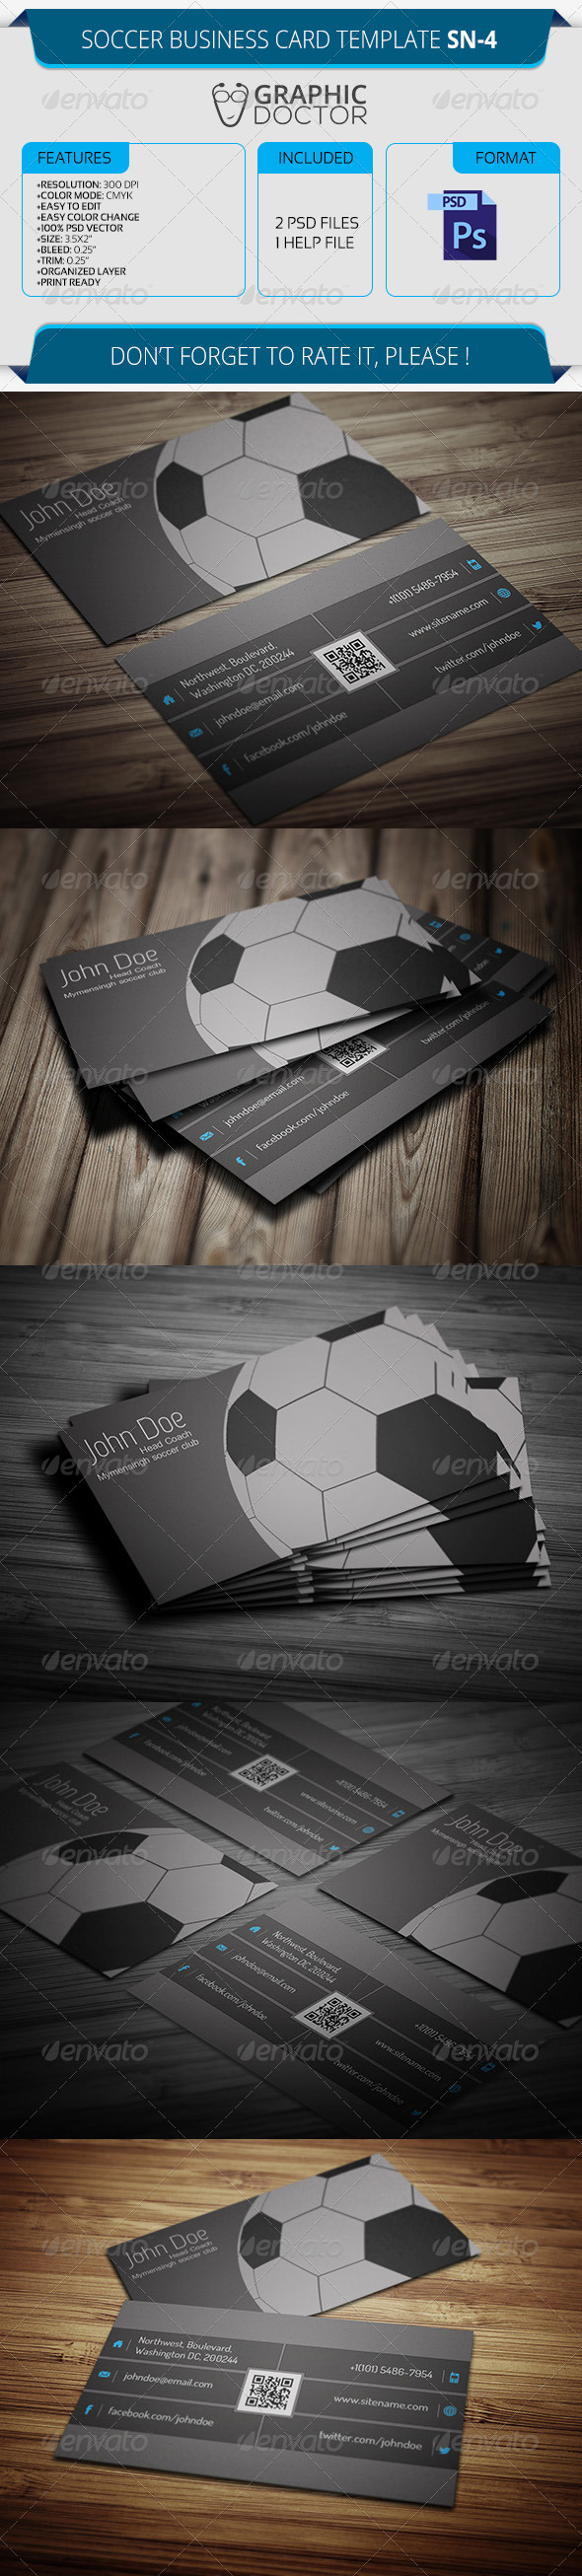 Soccer Business Card Template SN-4 by GraphicDoctor   GraphicRiver